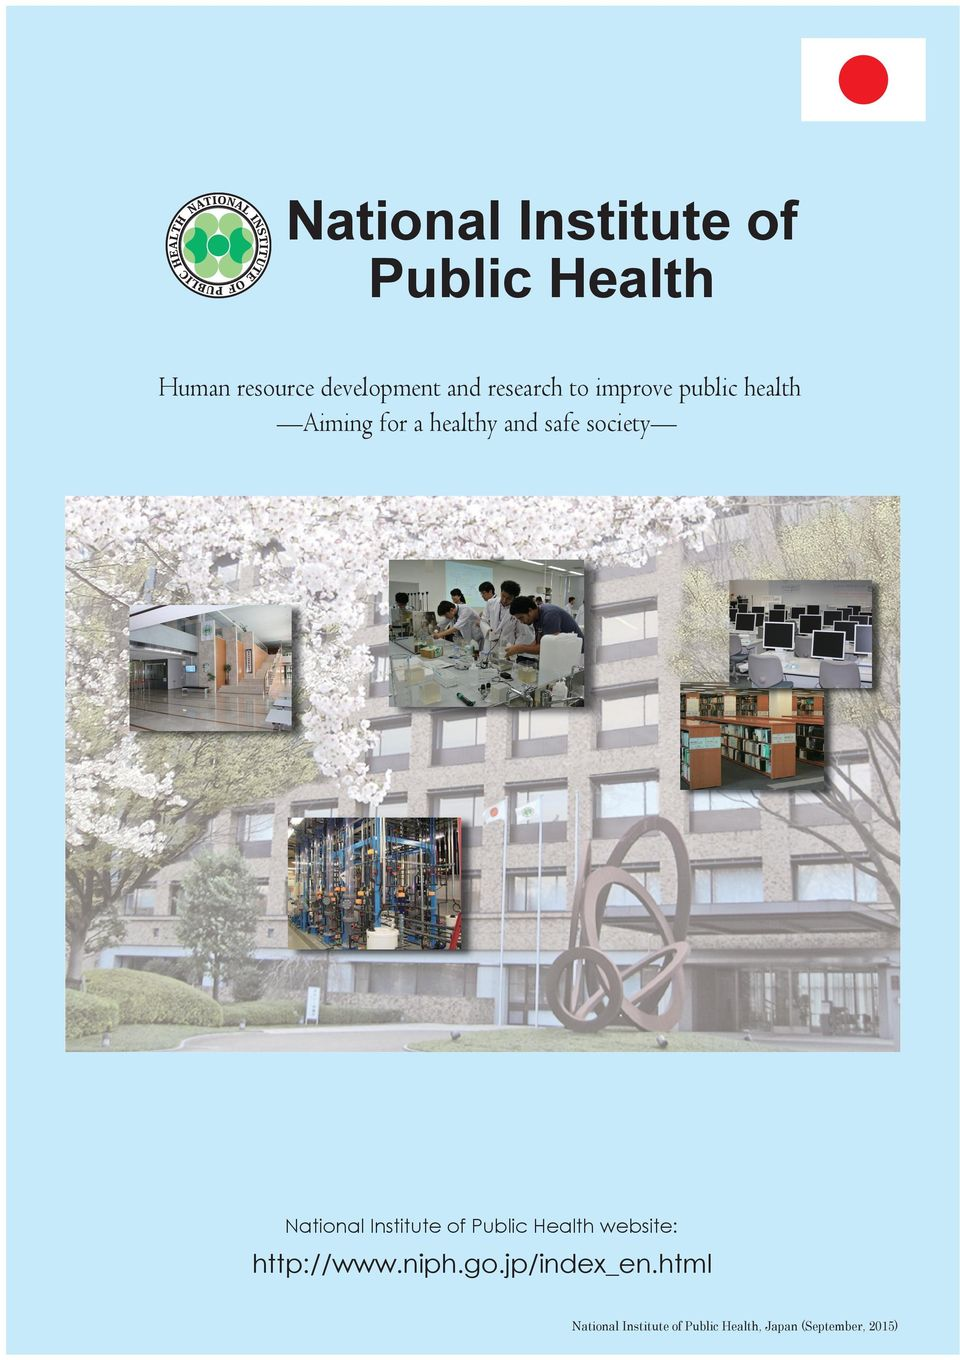 society National Institute of Public Health website: http://www.niph.